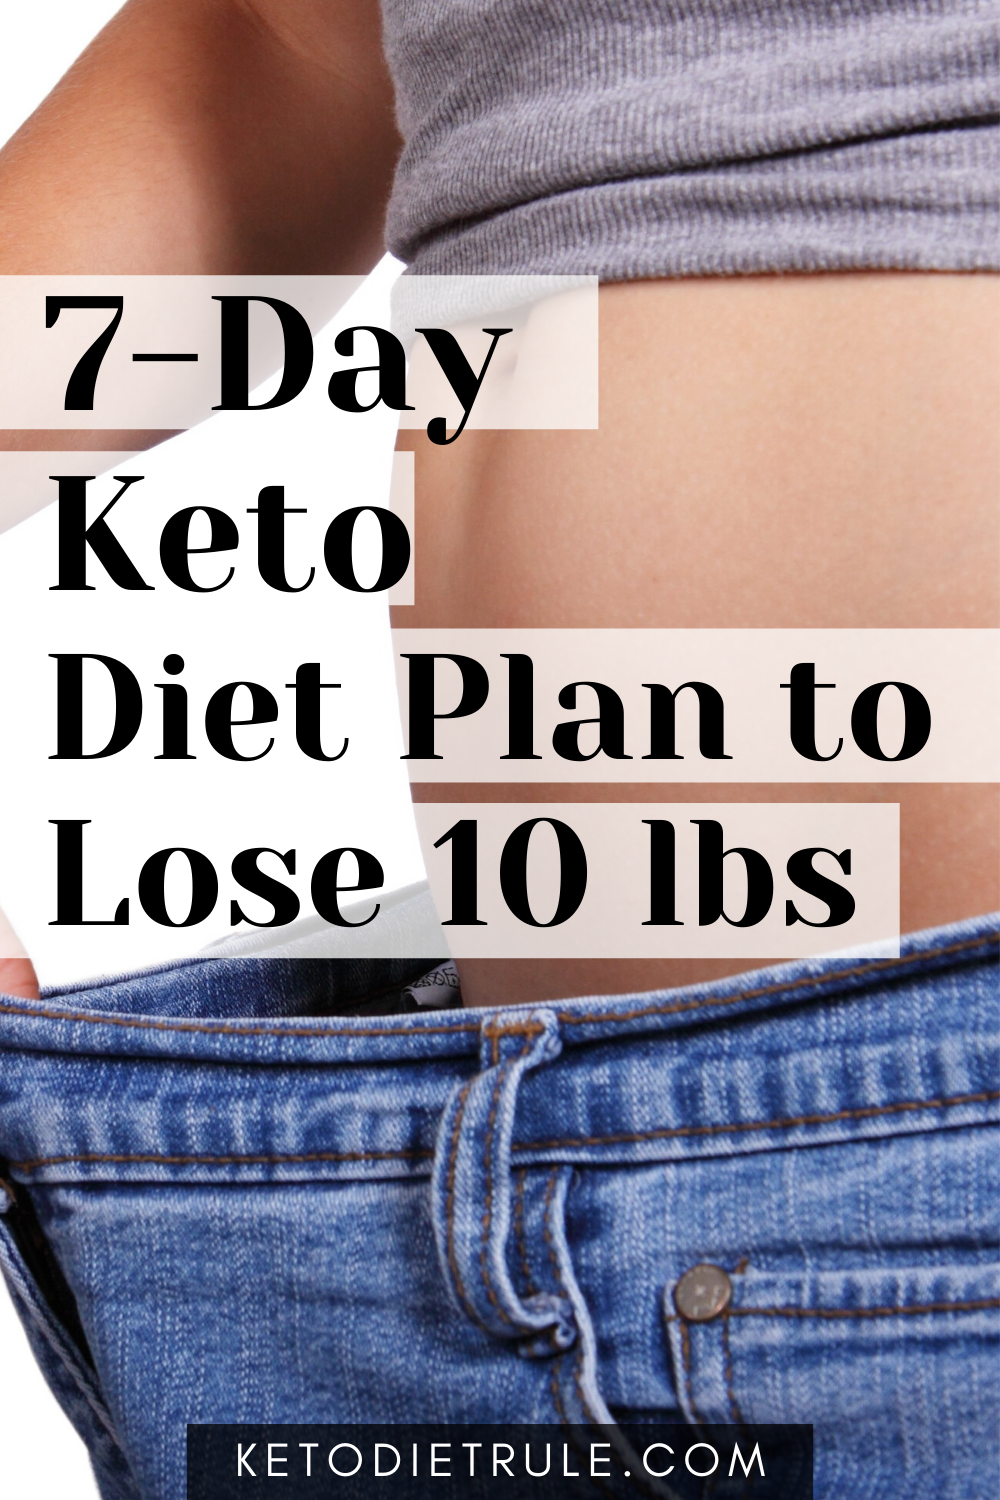 7-Day Keto Diet Plan for Beginners to Lose 10 LBS | Keto ...